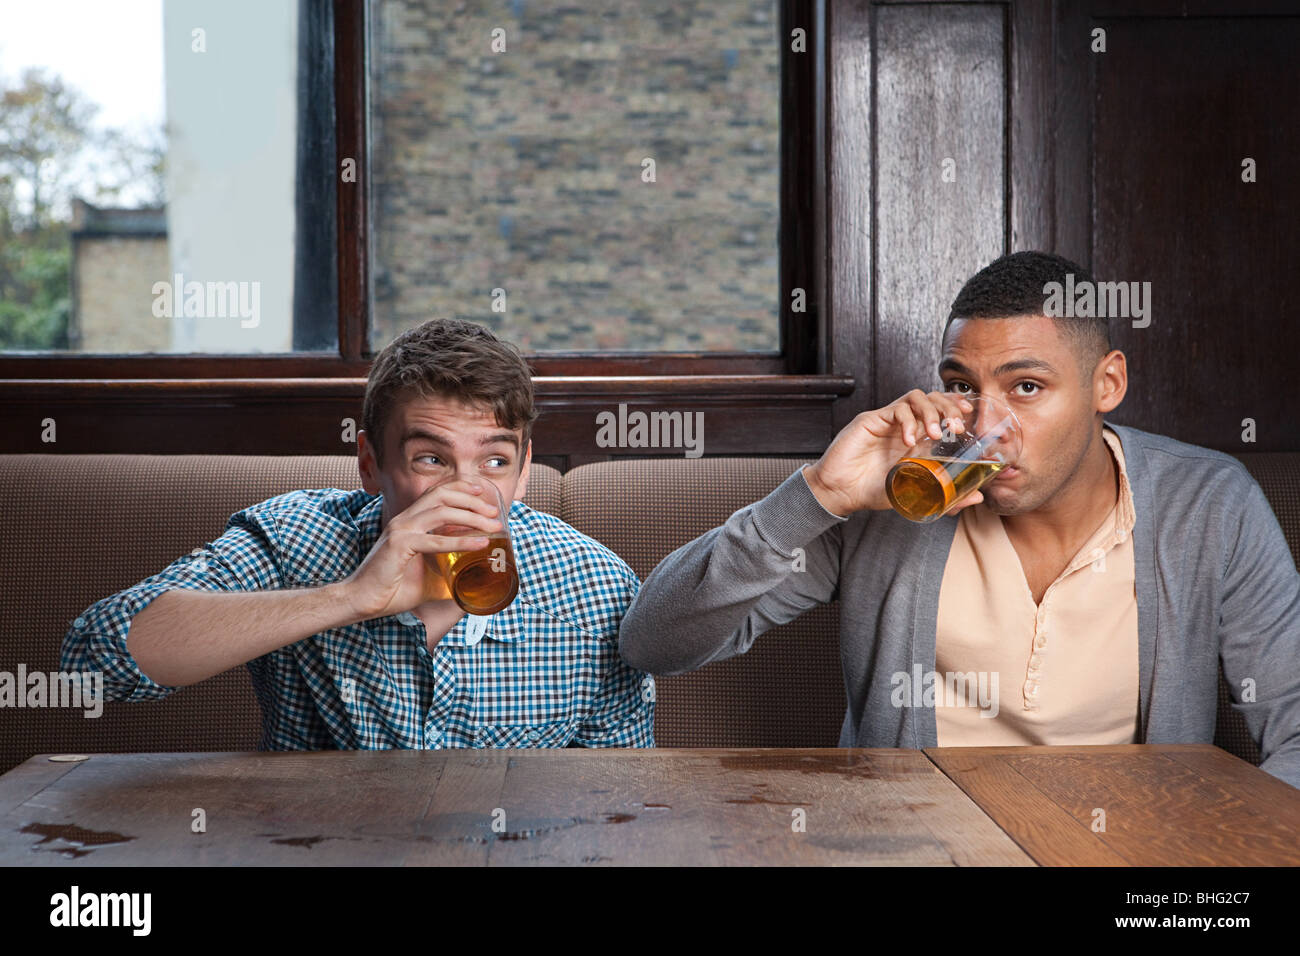 Young men drinking beer in bar Stock Photo